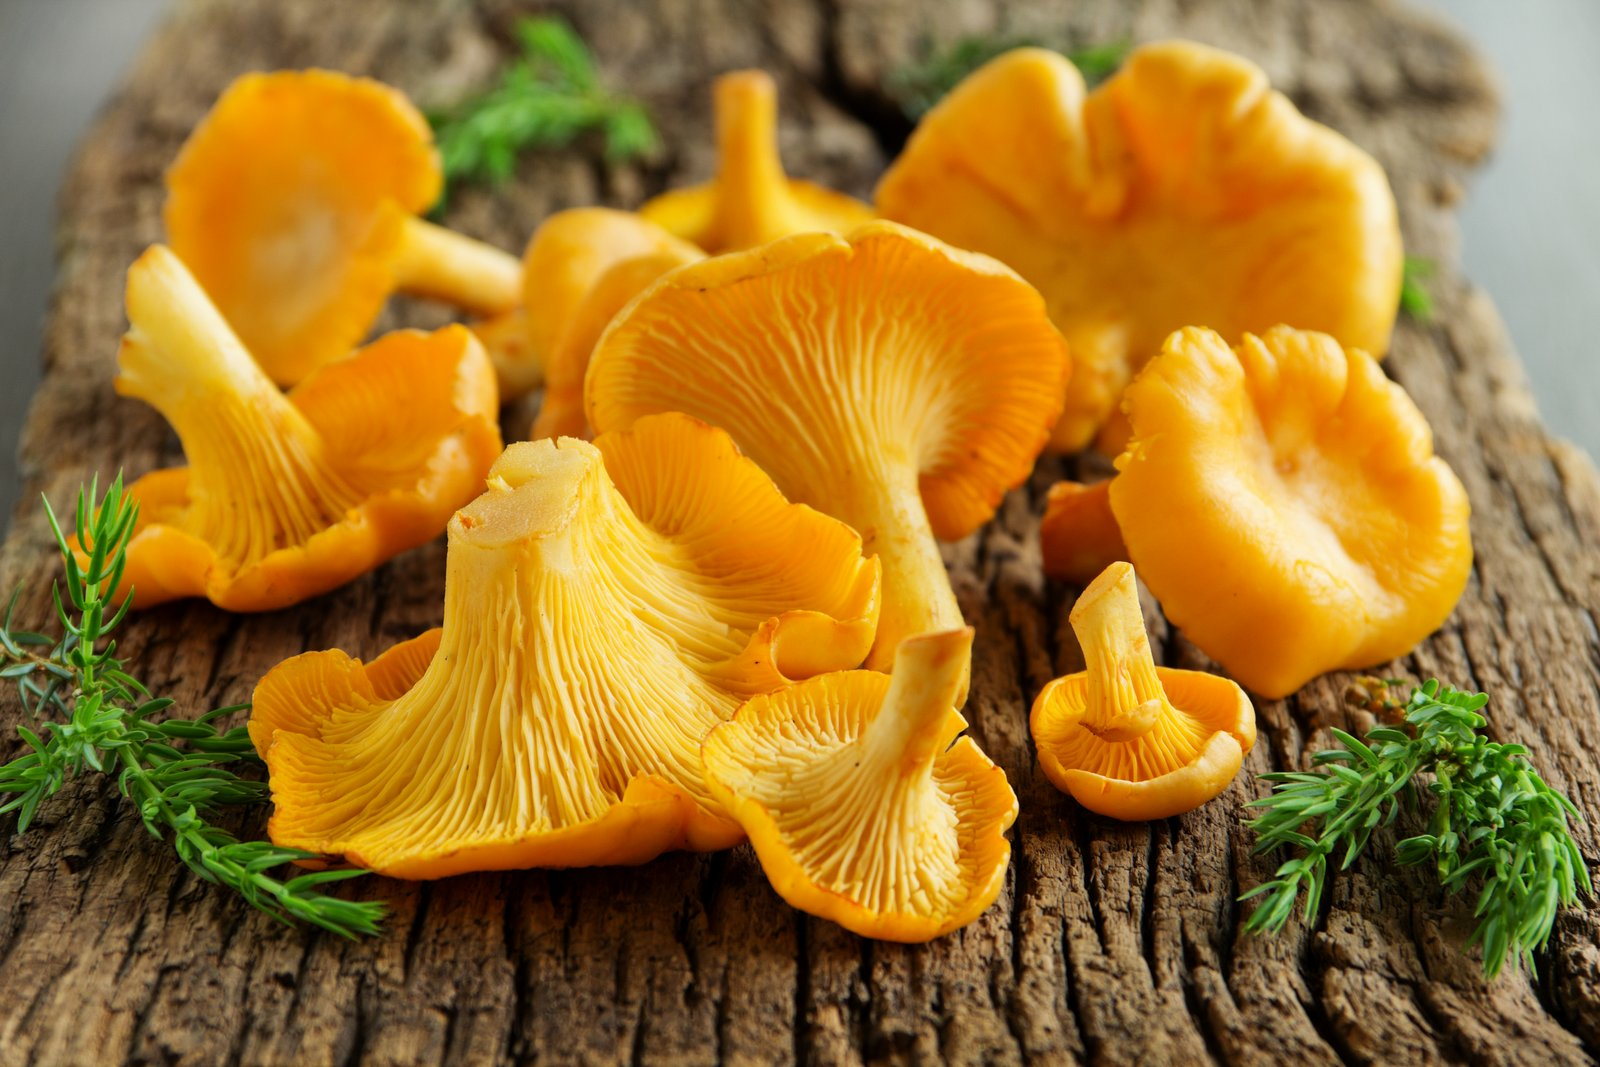 Photos of chanterelle mushrooms 71 best Mushrooms Chanterelles images on Pinterest Fungi